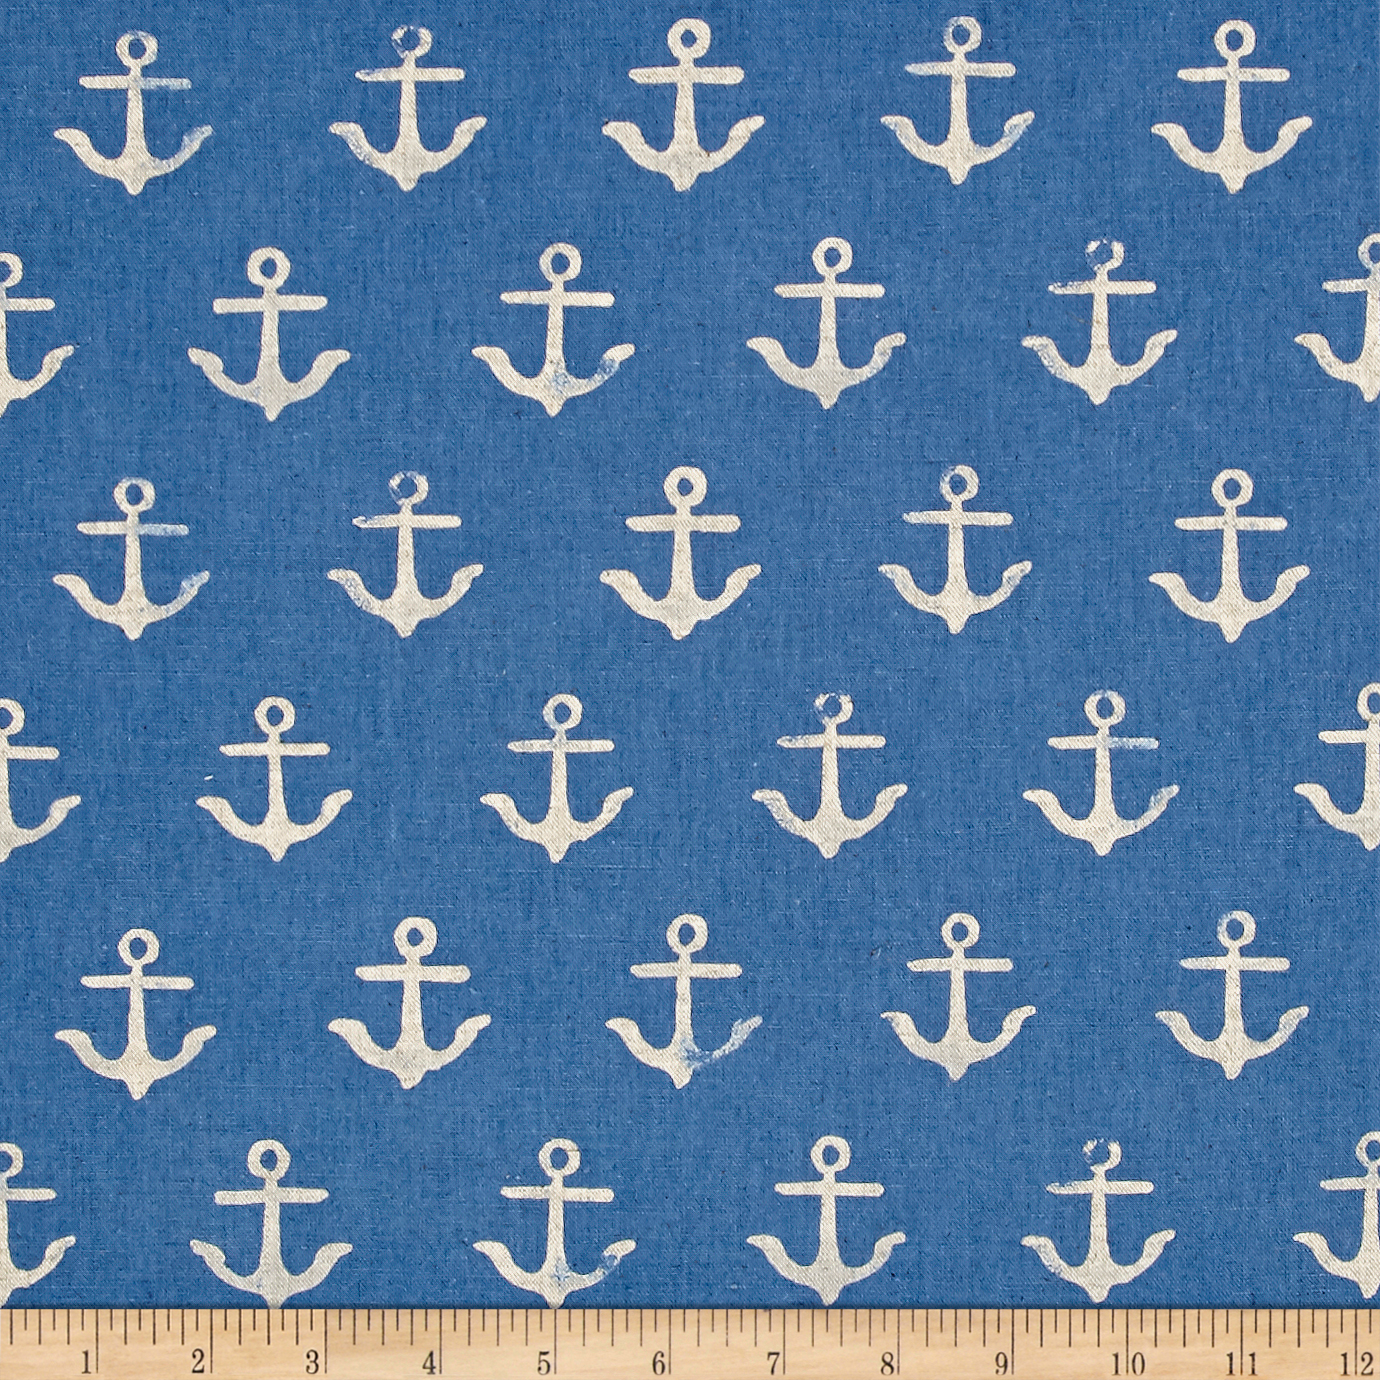 Image of Cotton + Steel S.S. Bluebird Canvas Anchor Blue Fabric